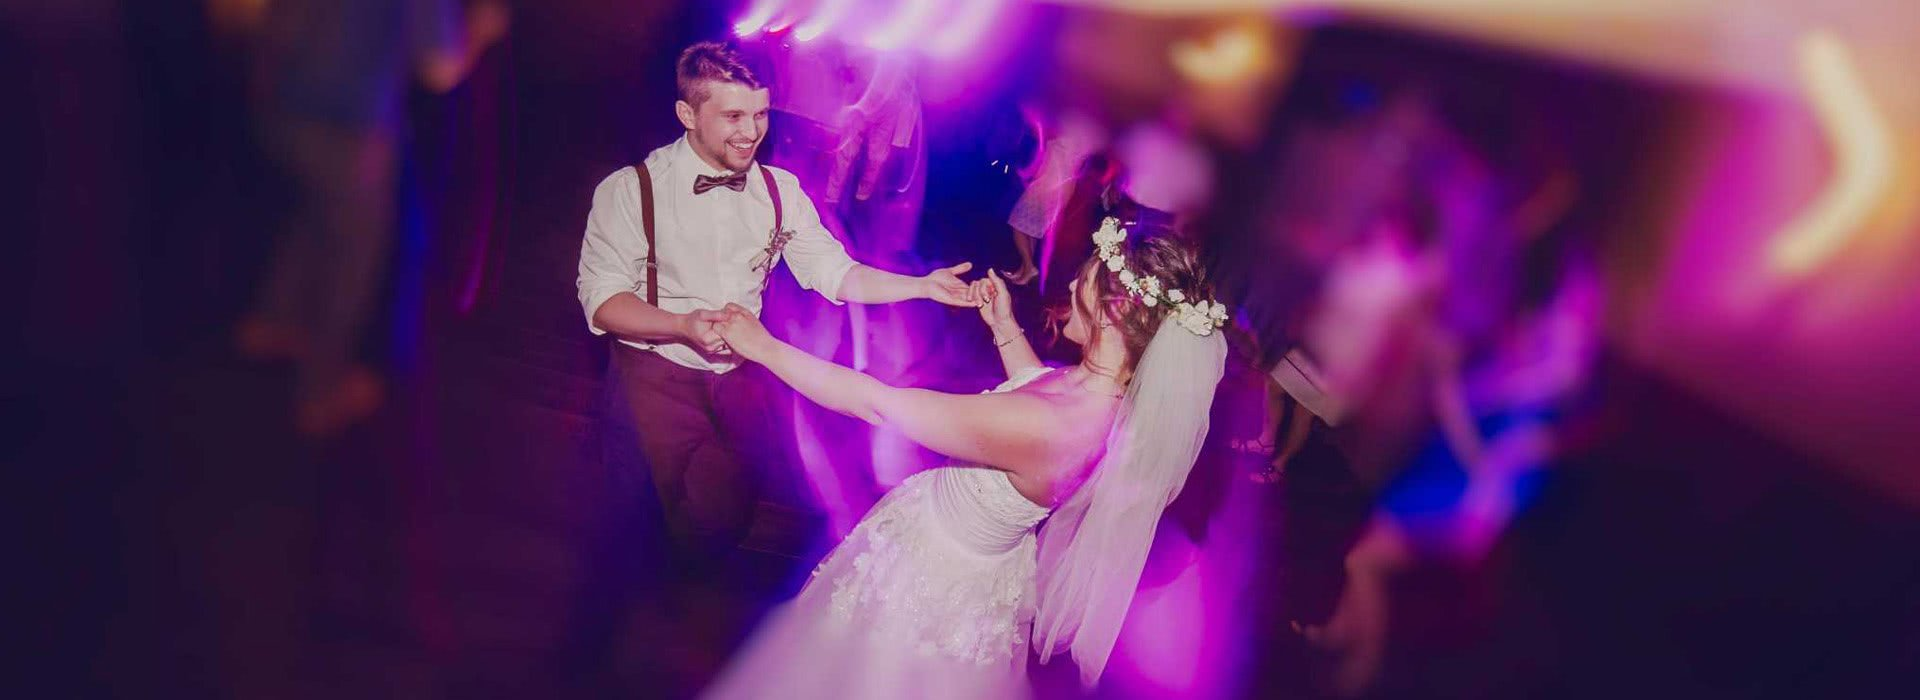 wedding dj east kilbride